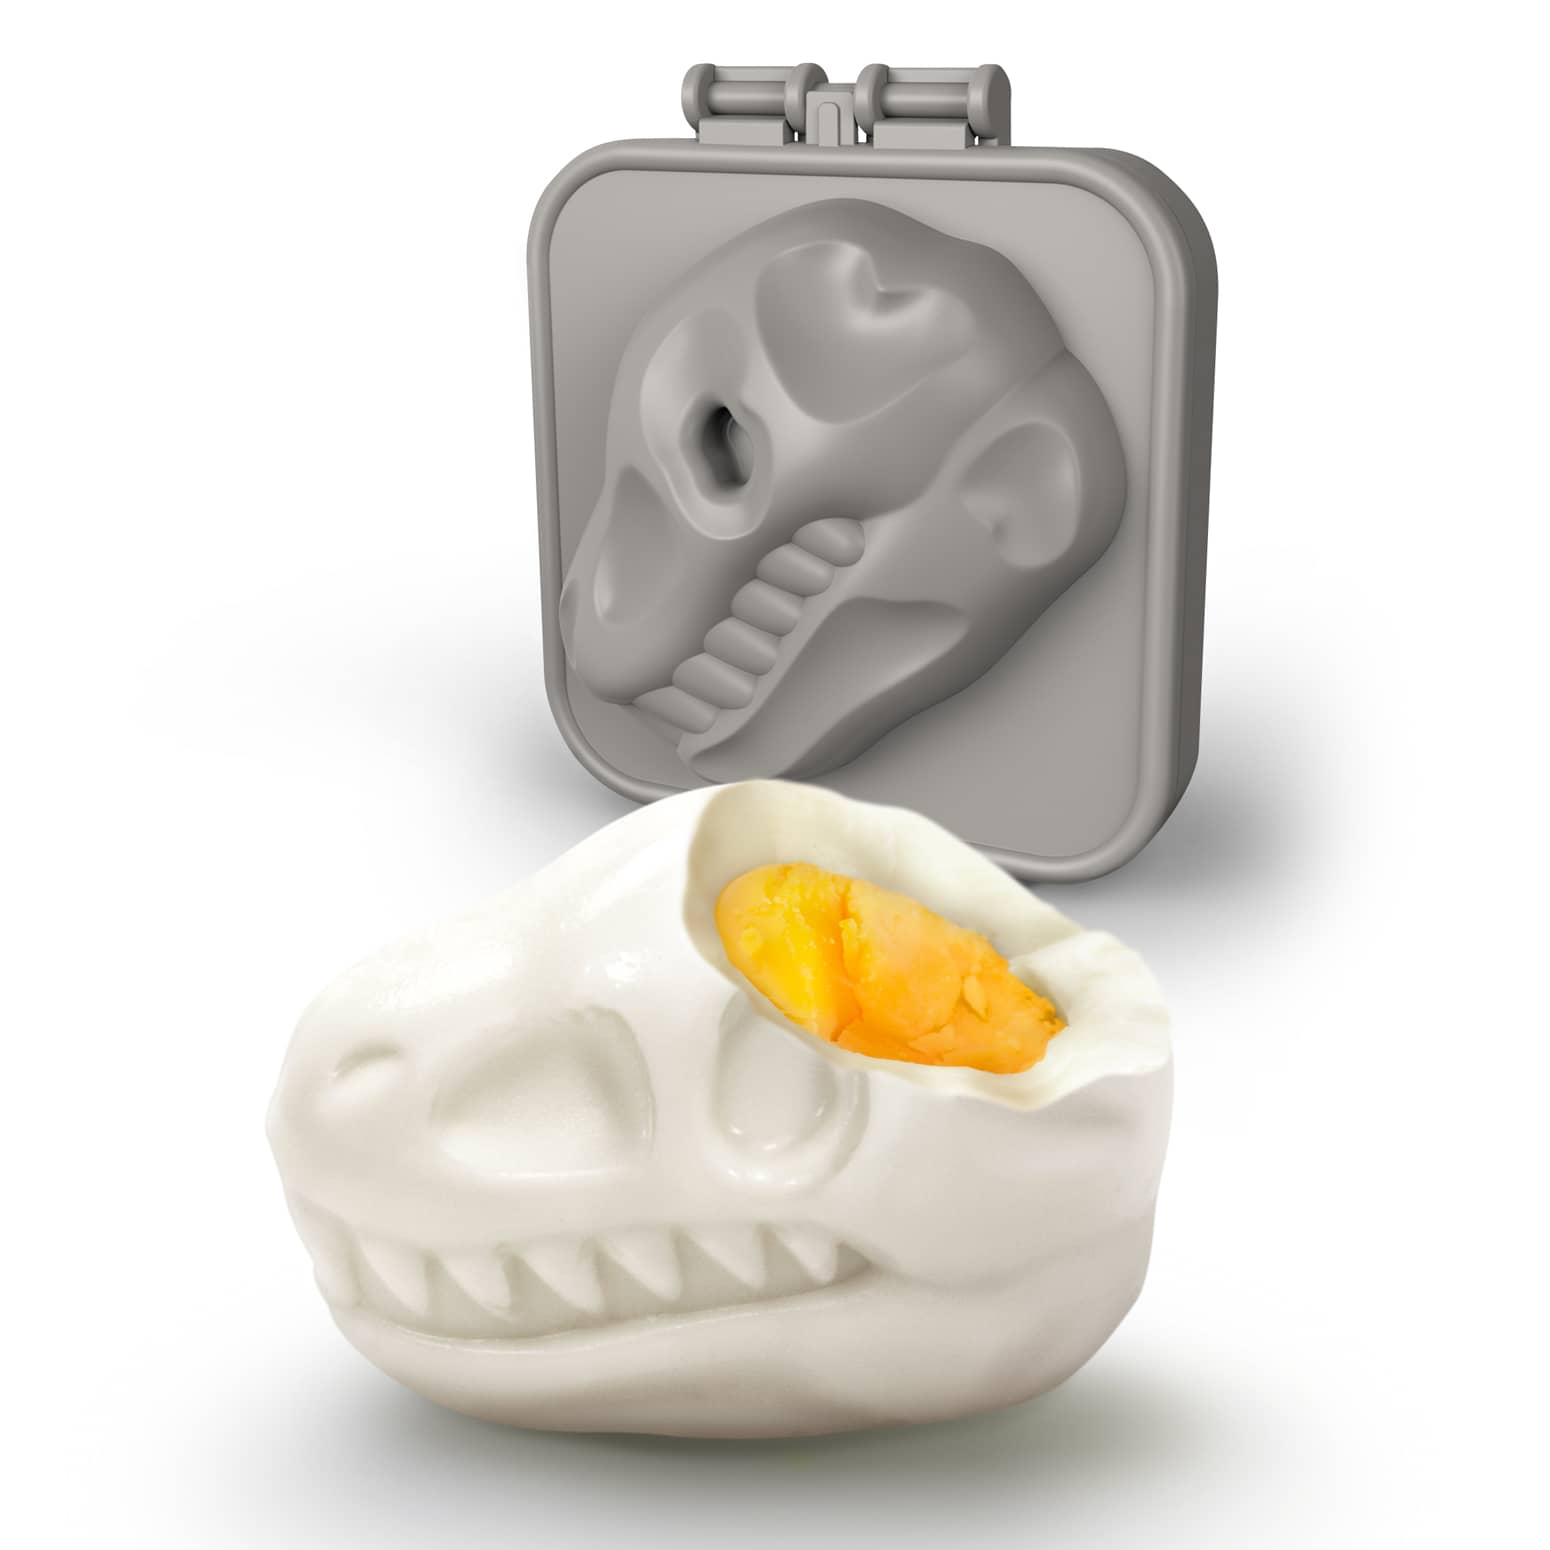 EGG-A-MATIC Dinosaur Skull - Hard-Boiled Egg Mold